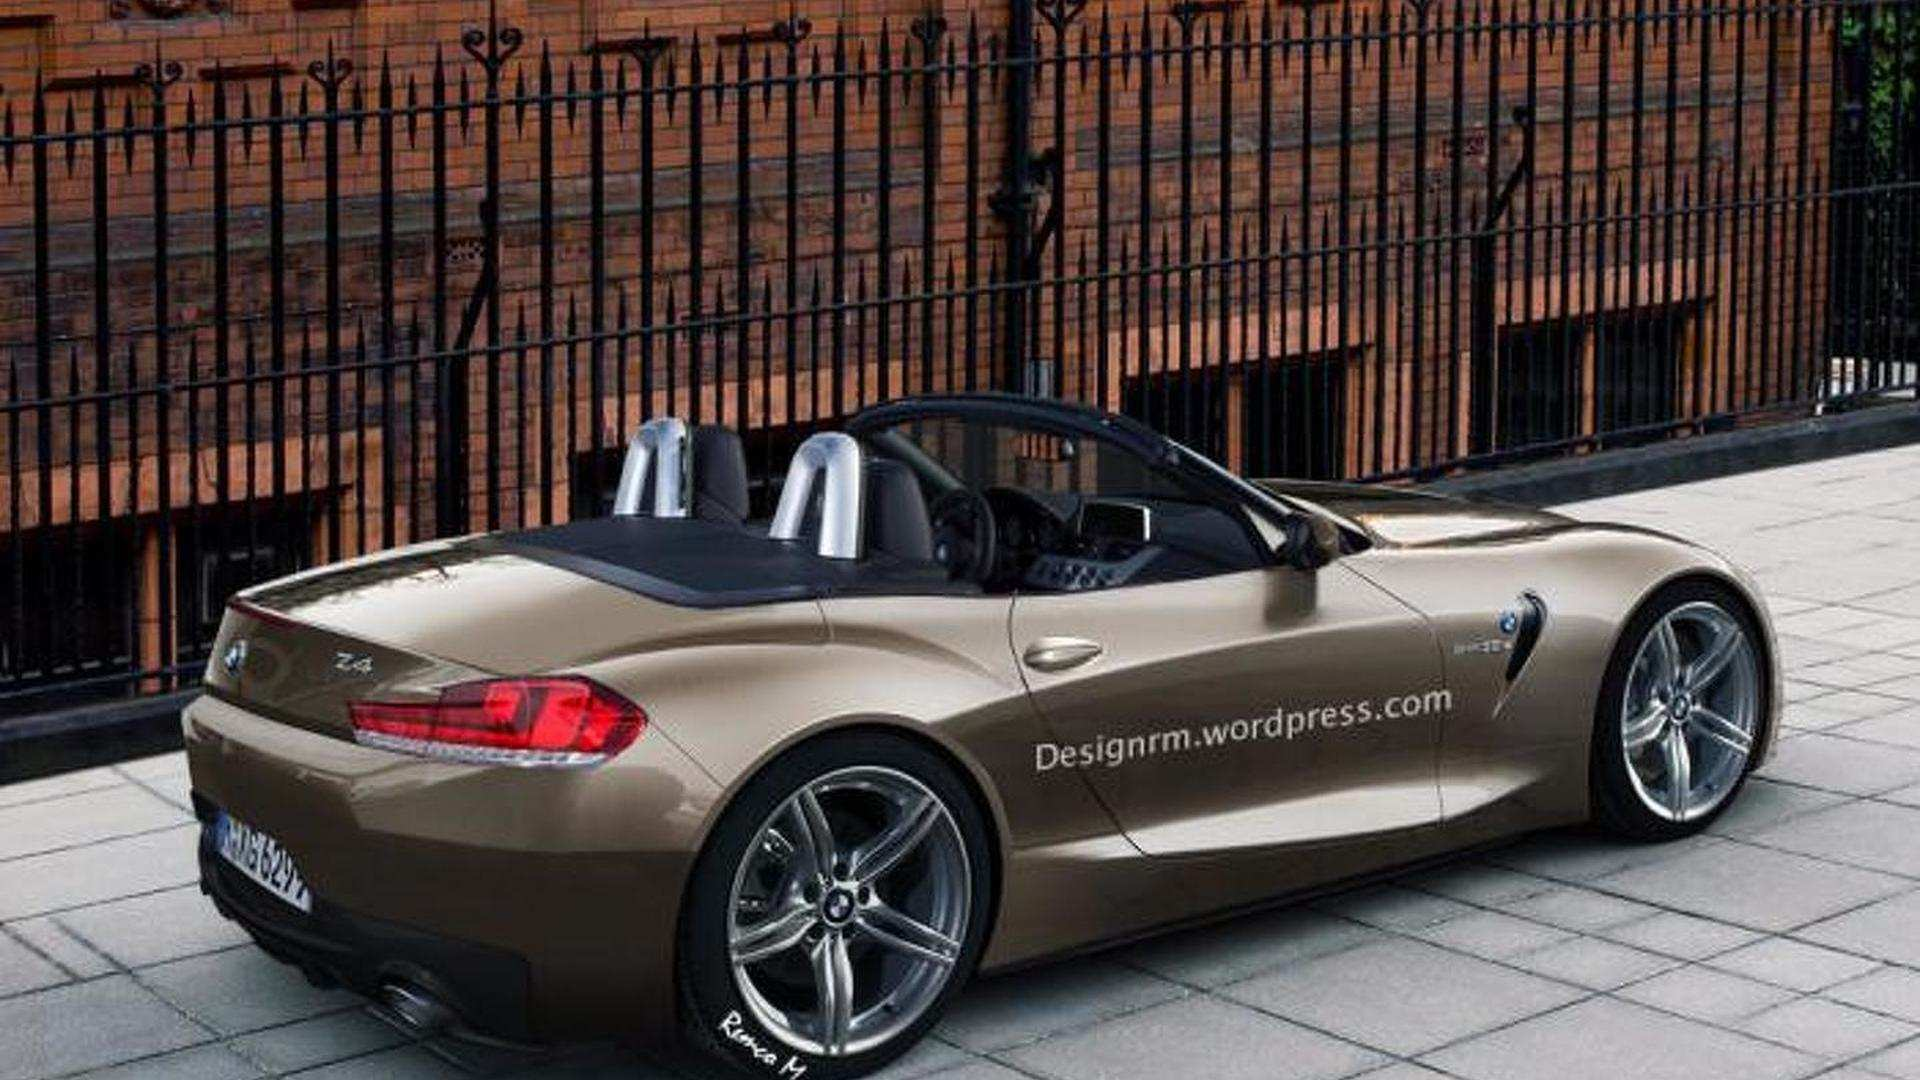 76 Best Review 2020 BMW Z4 Roadster Ratings for 2020 BMW Z4 Roadster